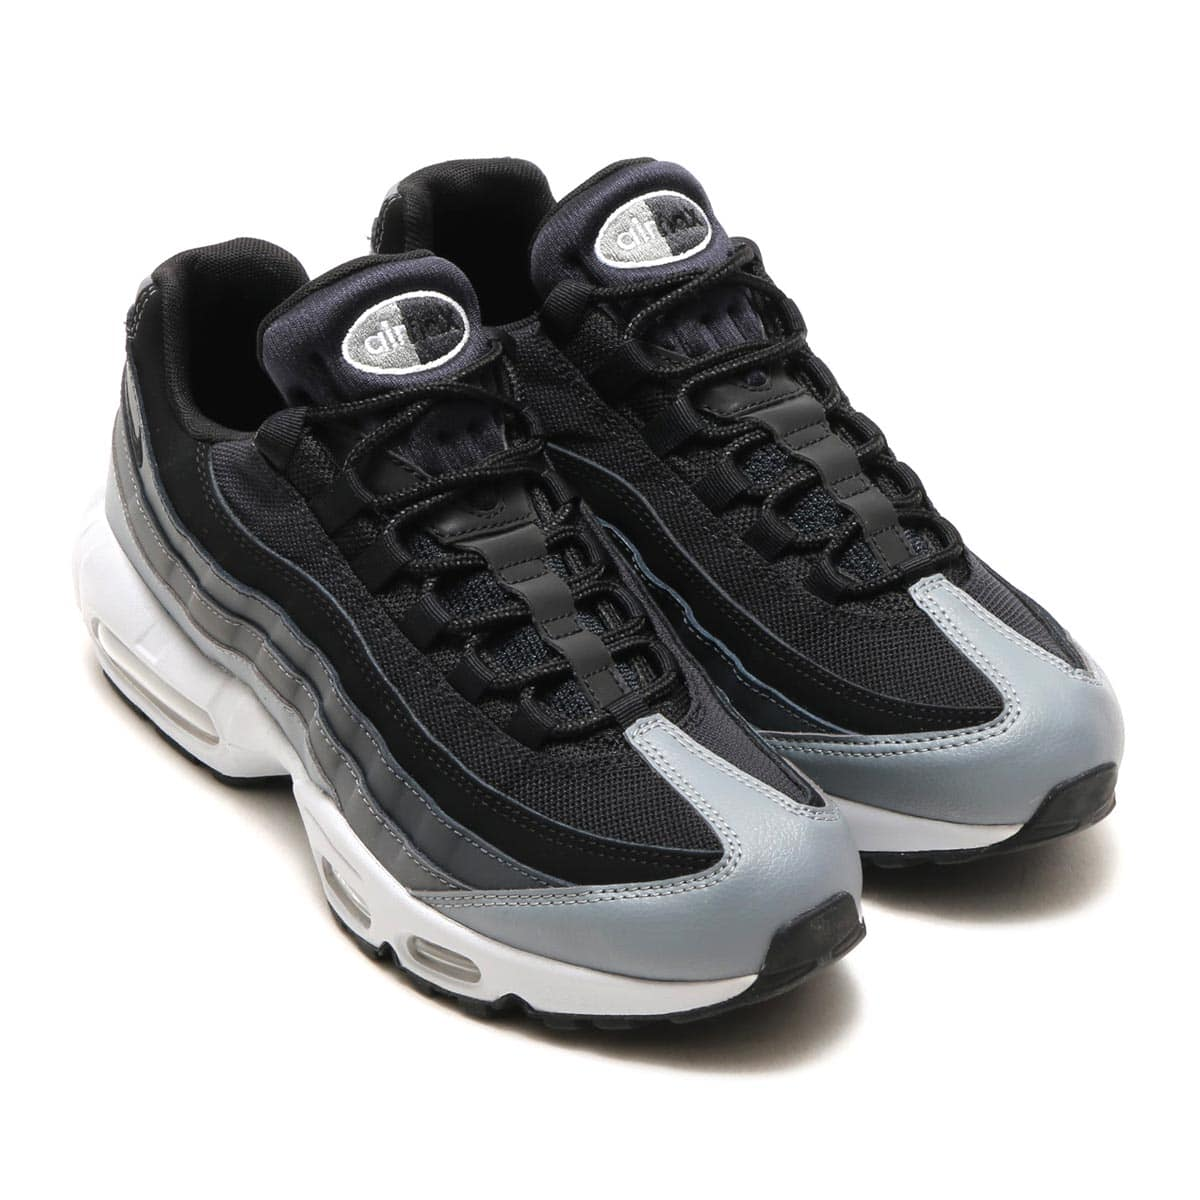 Nike Air Max 95 Mens Trainers White Anthracite Black New Release